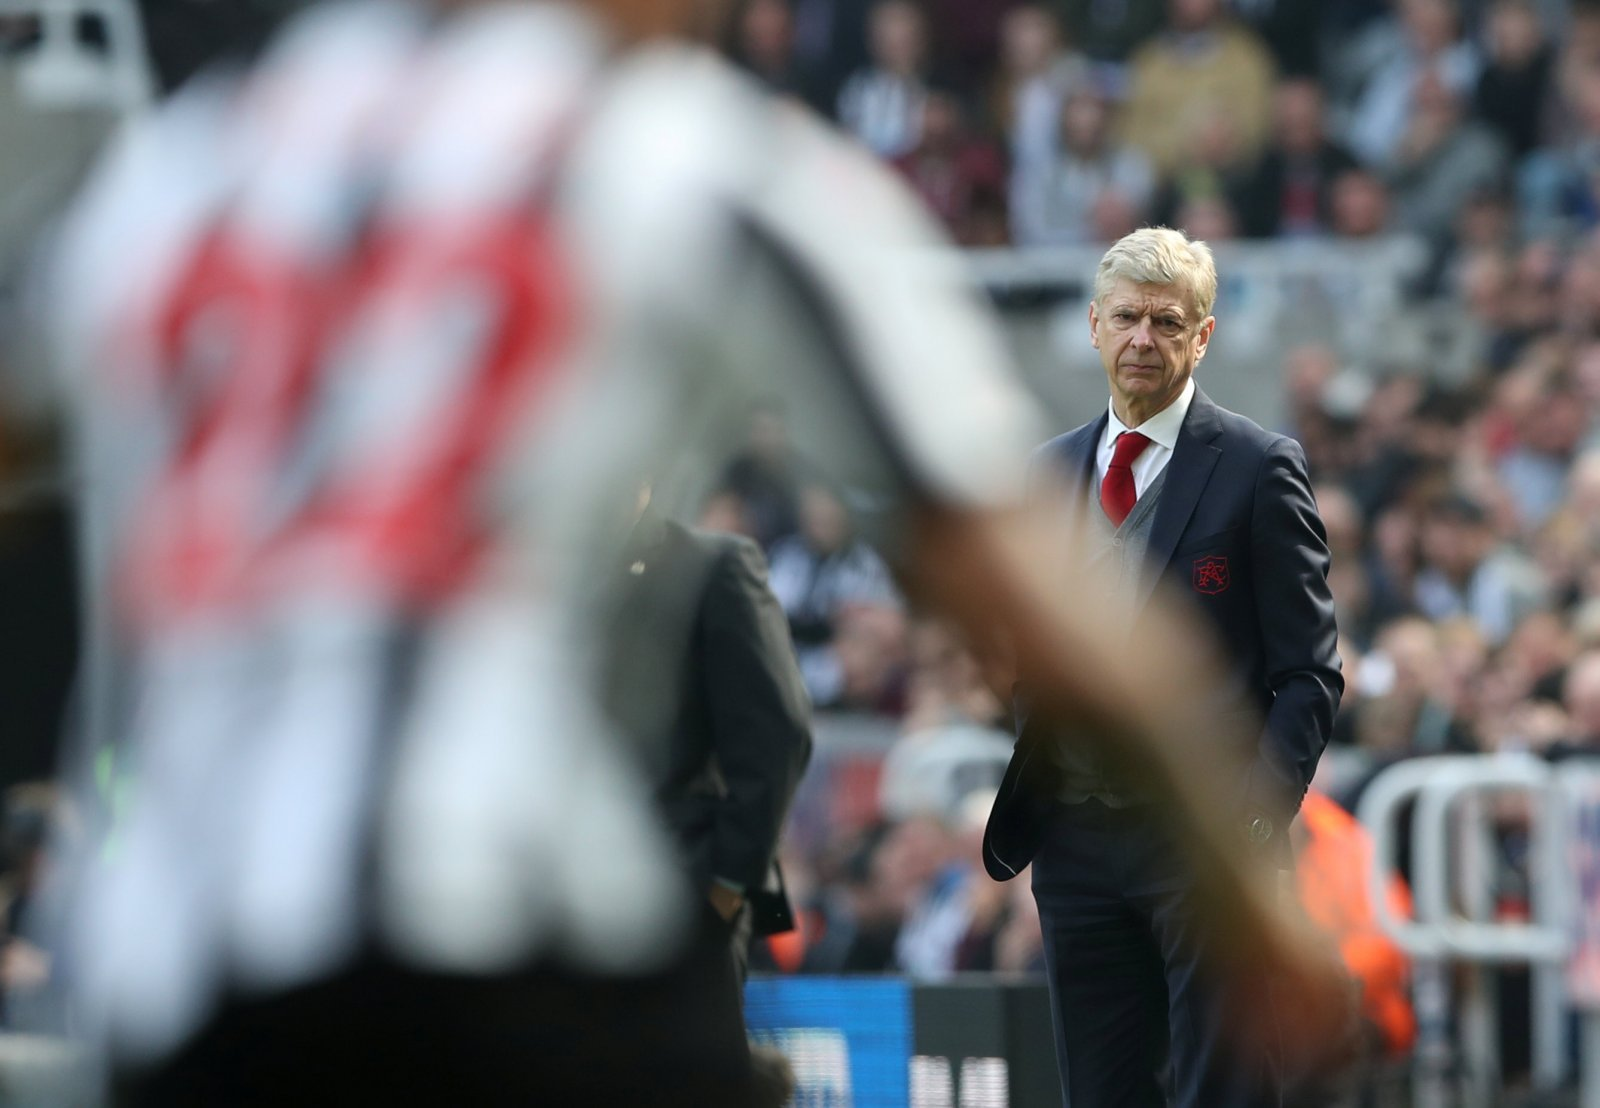 Arsenal: Fans excited after Arsene Wenger lands role with FIFA